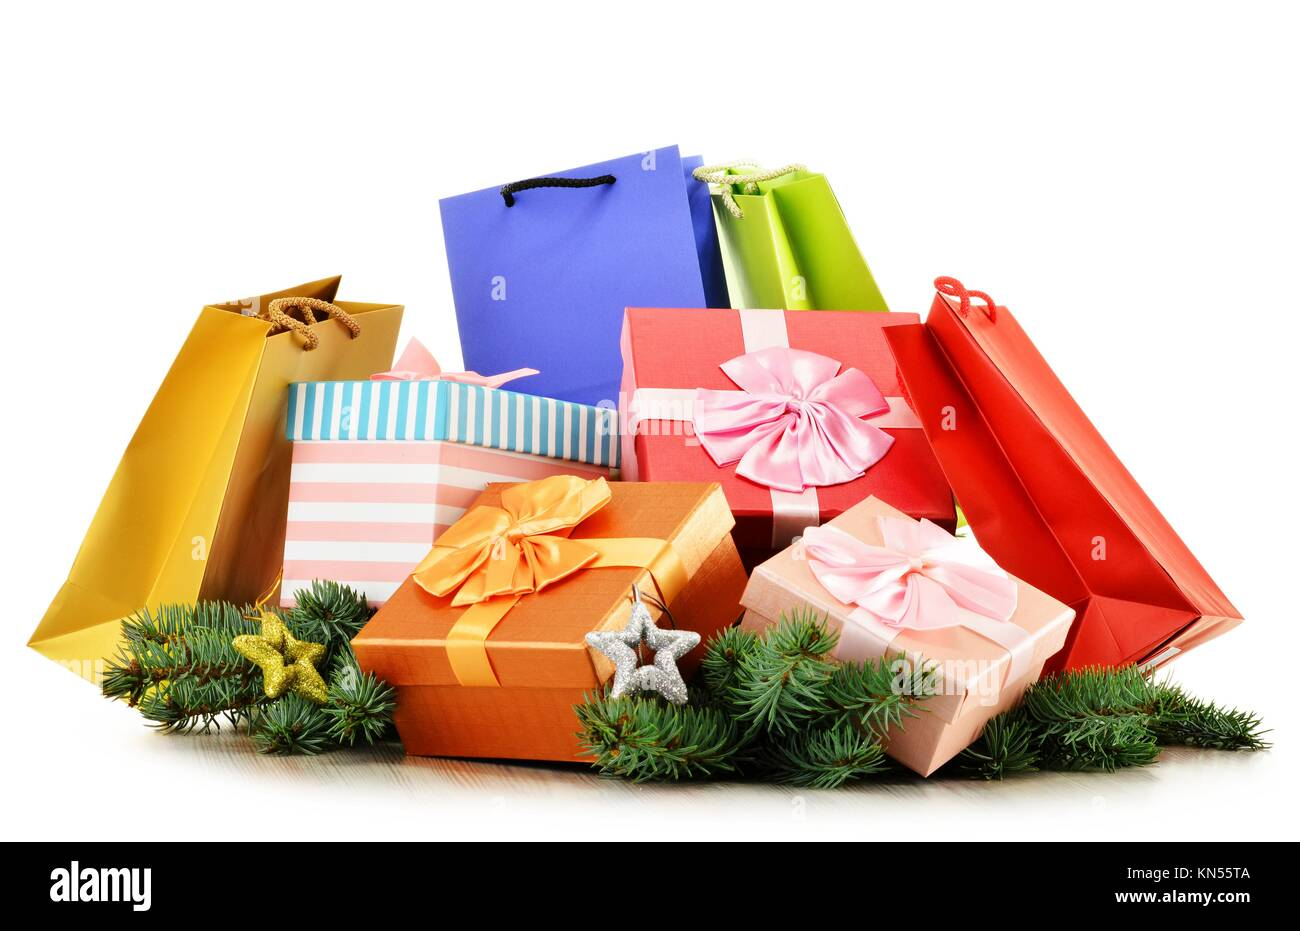 Colorful gift boxes and paper bags isolated on white background. Stock Photo